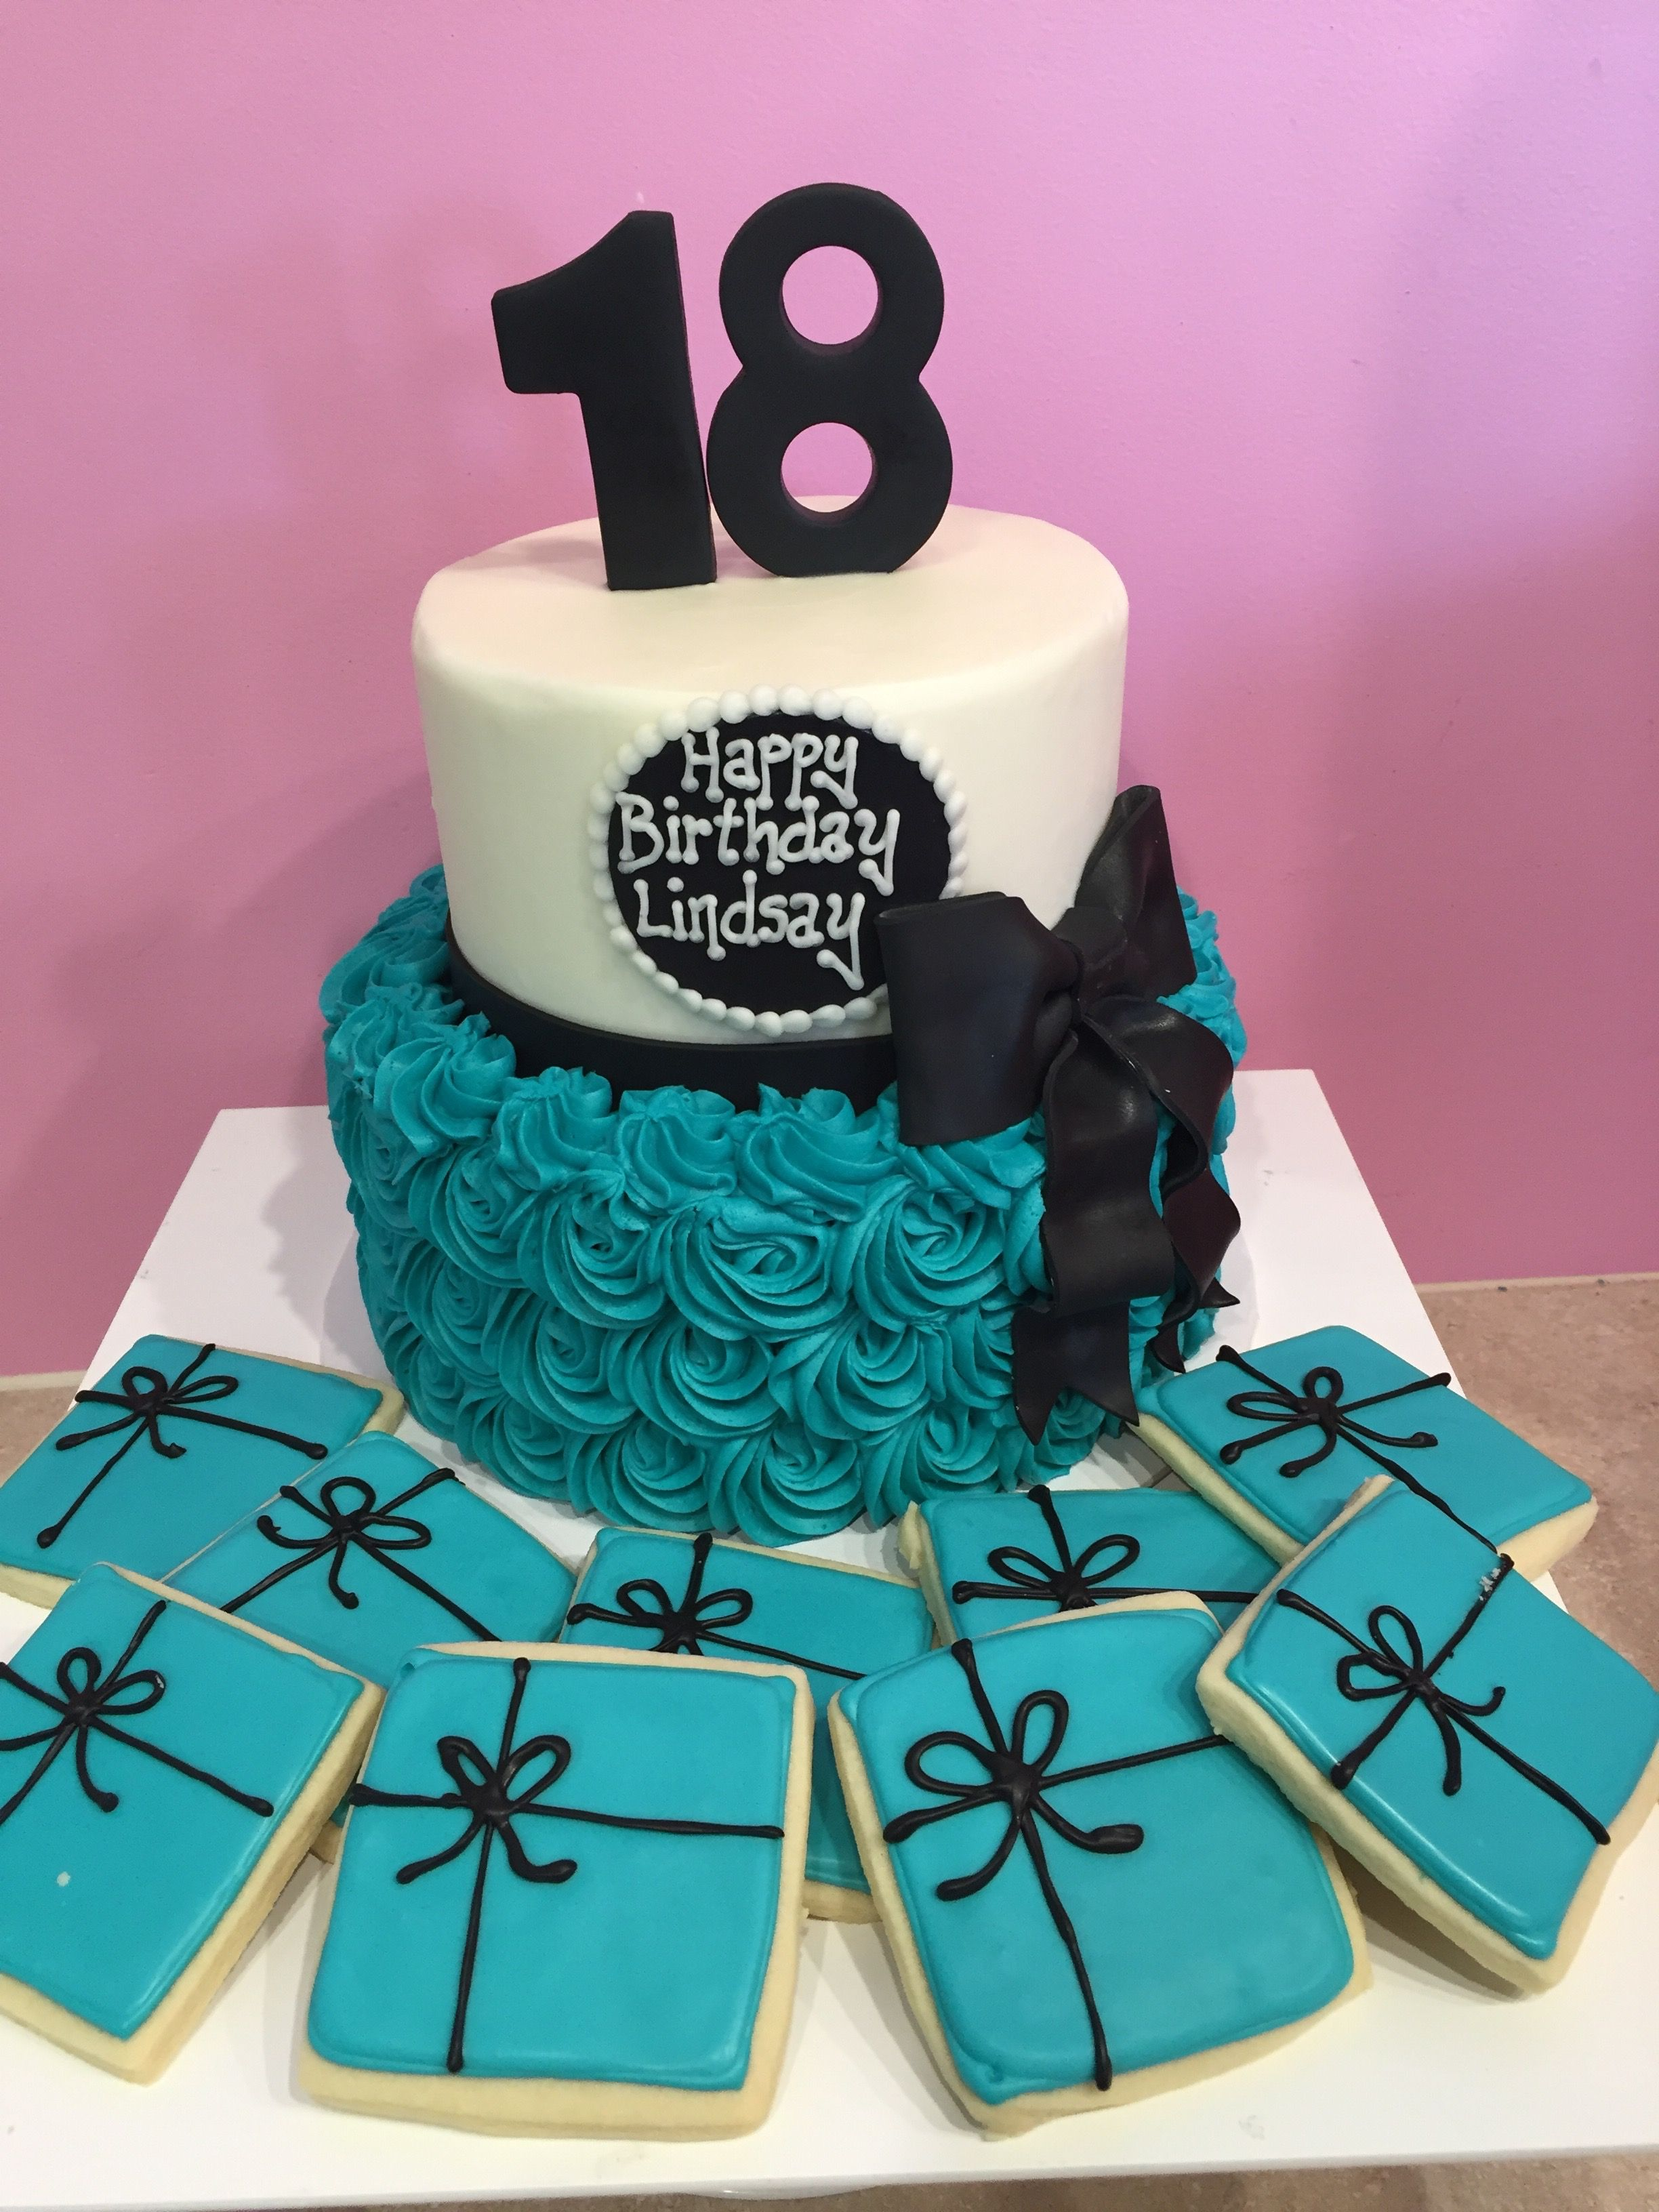 Pleasant 18Th Birthday Cake In Blue Rosette With Black Bow And Matching Funny Birthday Cards Online Alyptdamsfinfo